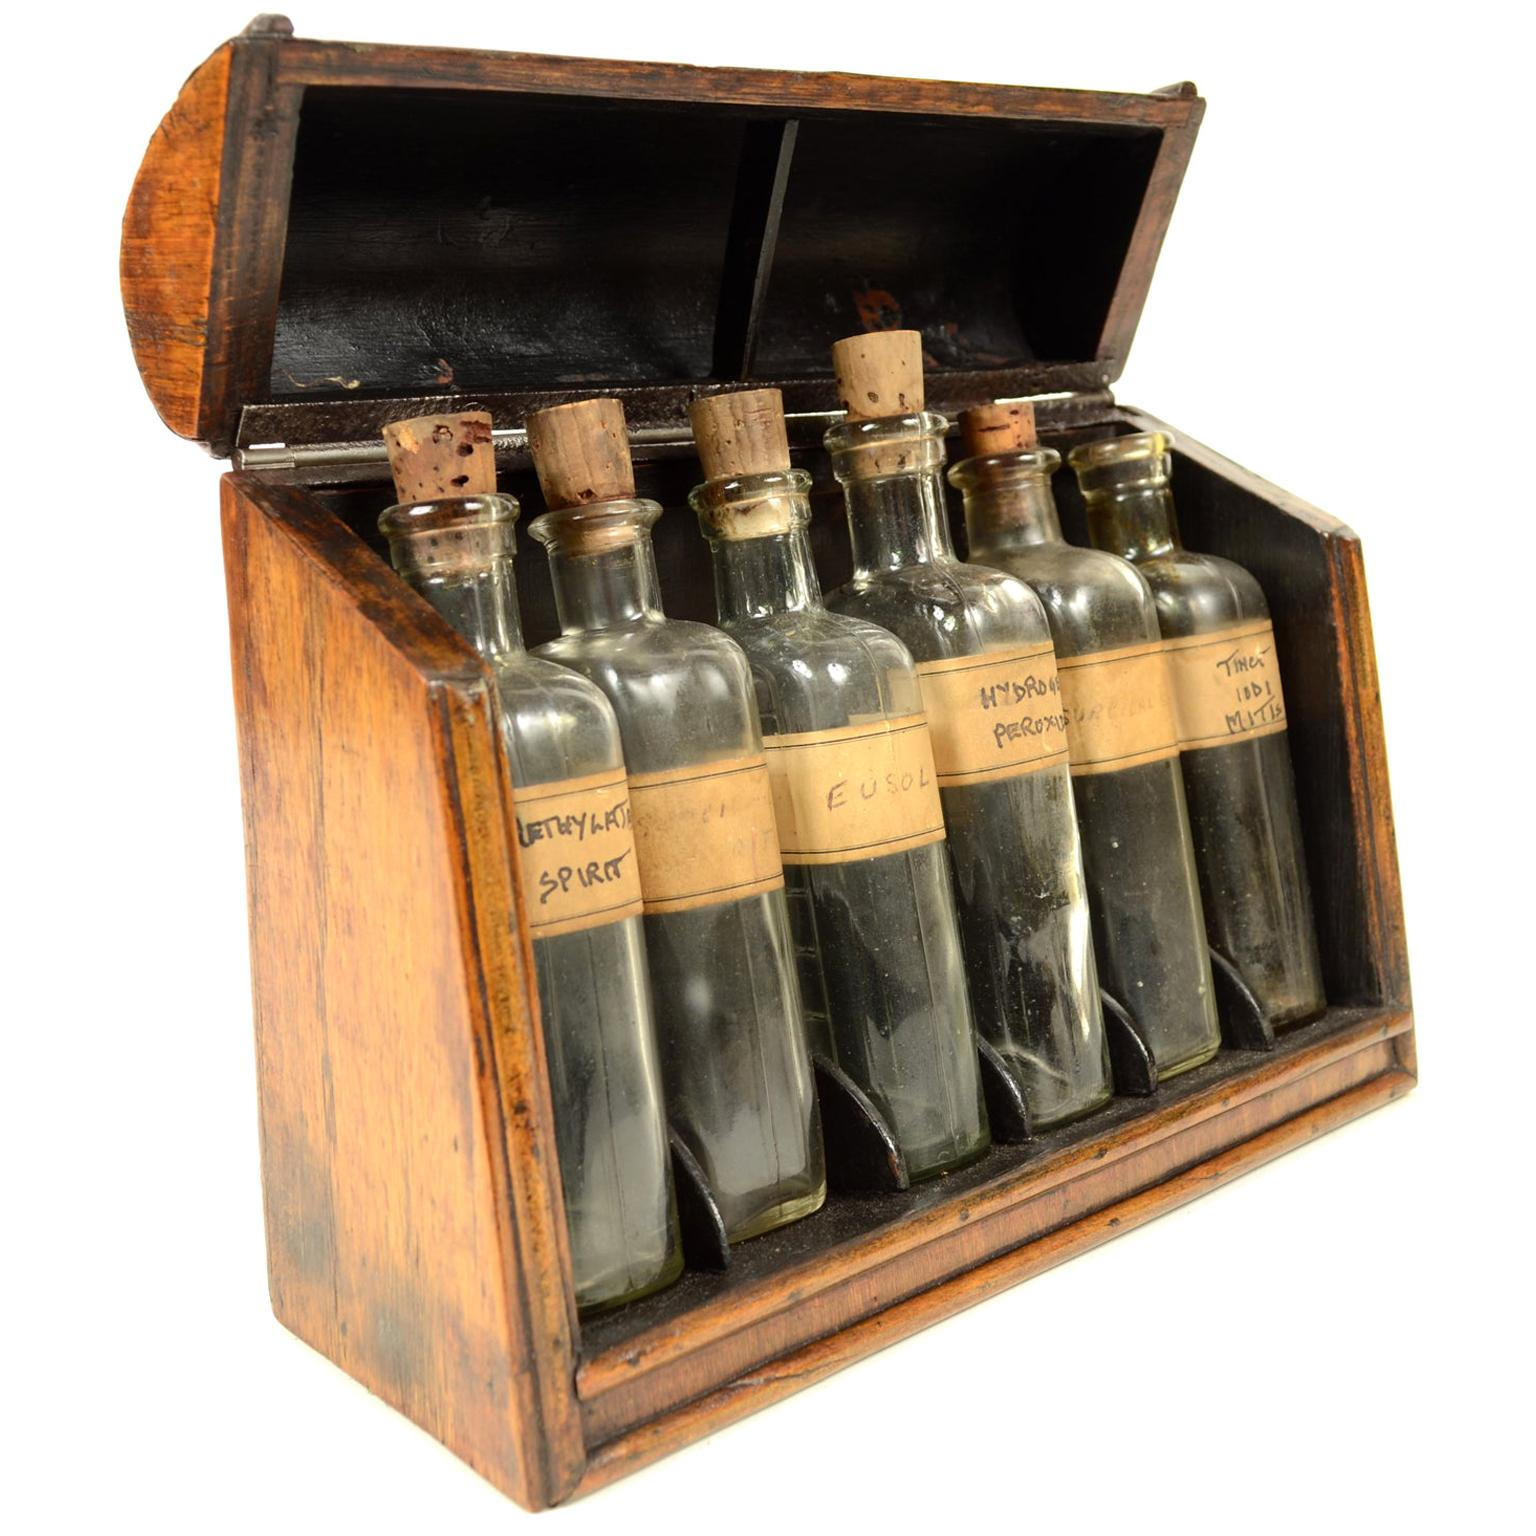 Pharmaceutical Wooden Box with Six Glass Bottles, small apothecary set UK 1860